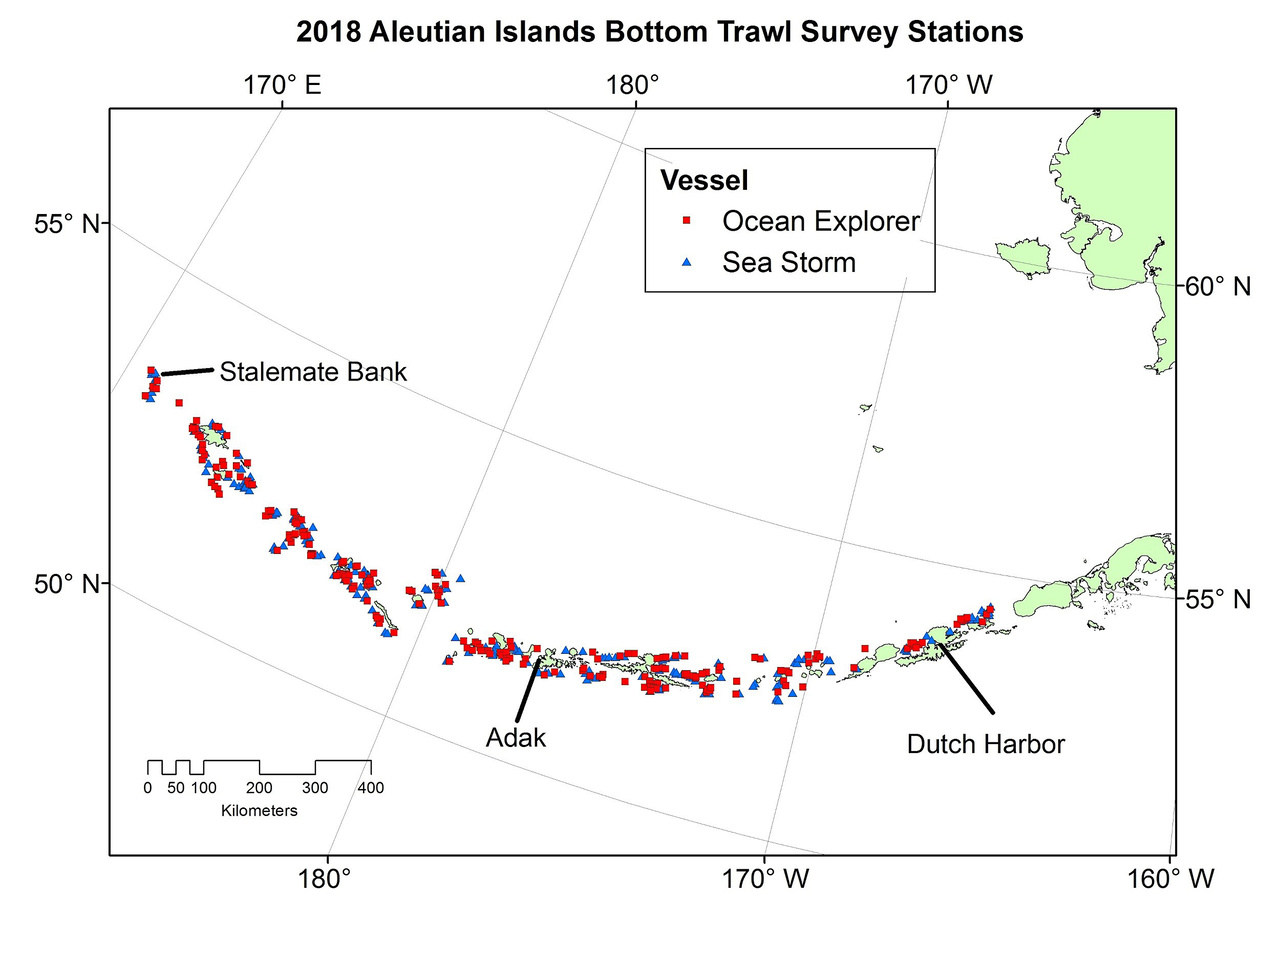 Proposed sample stations for the Aleutian Islands Bottom Trawl Survey.